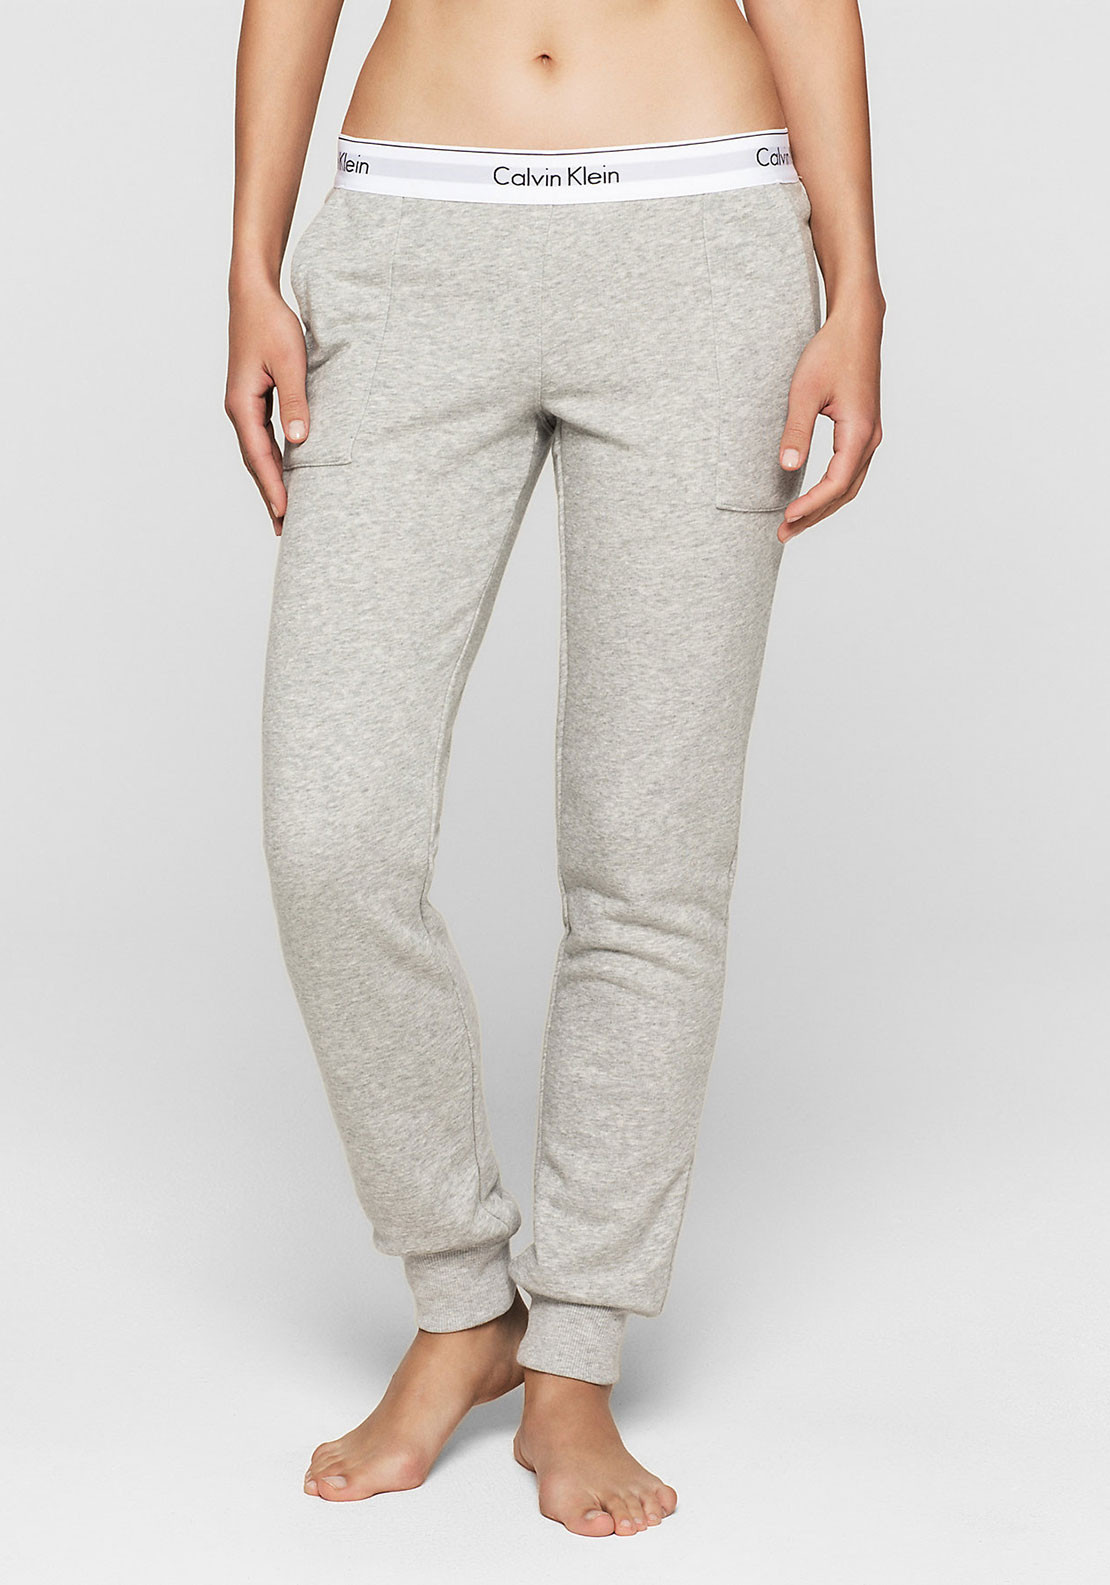 058bbf823bf0f Calvin Klein Logo Band Lounge Pants, Grey | McElhinneys